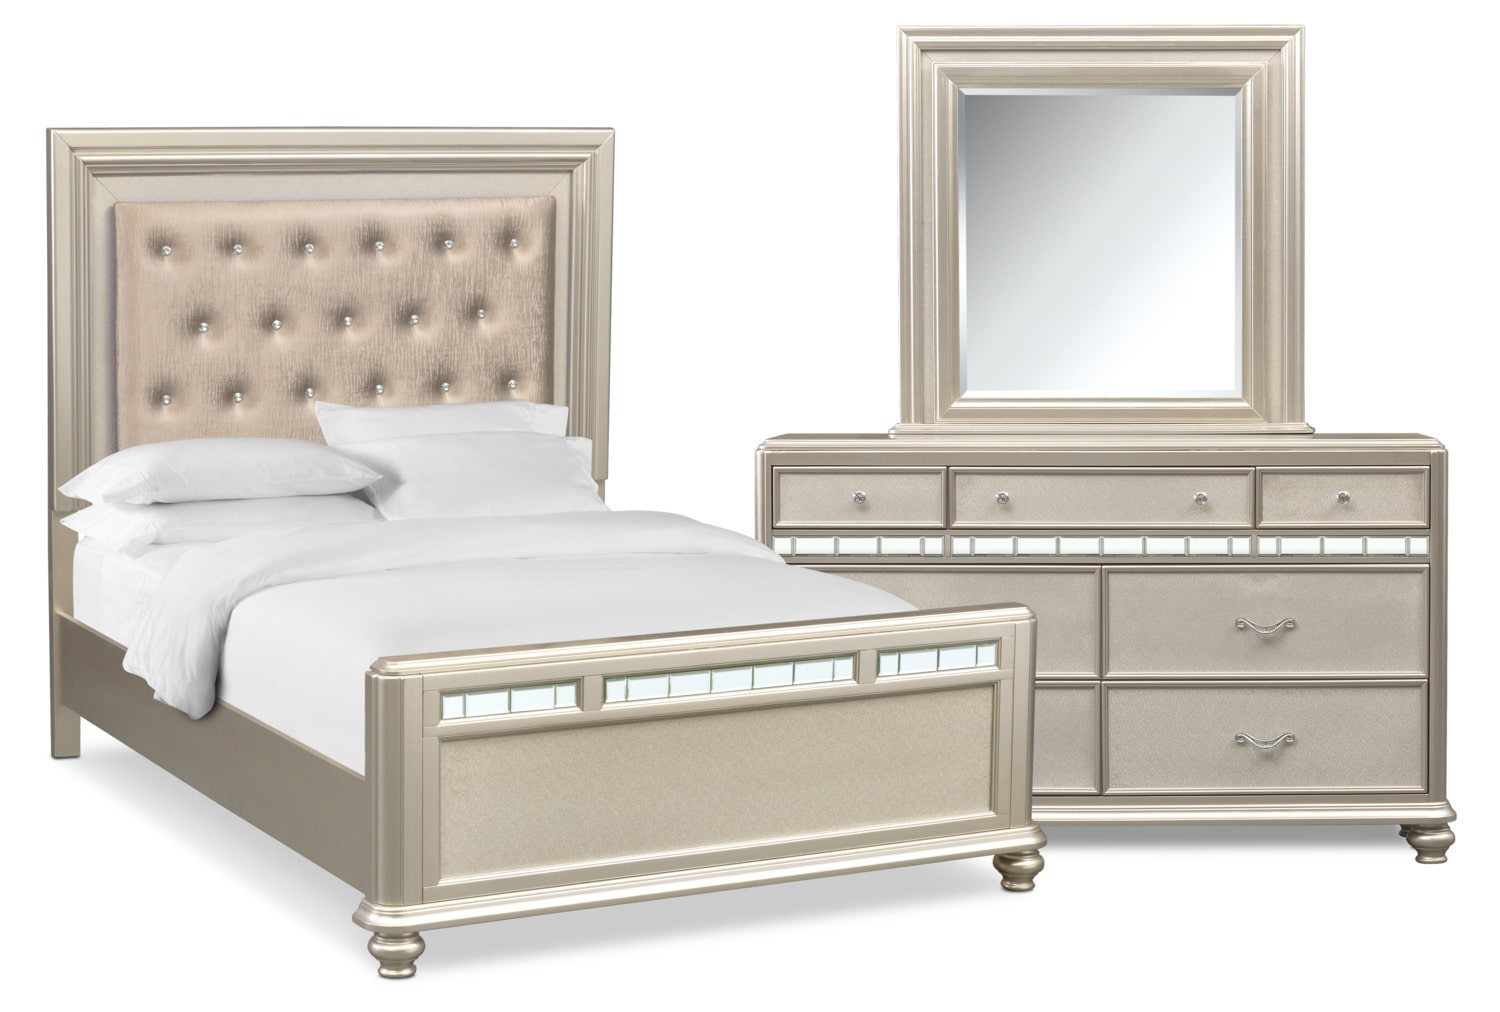 Bedroom Furniture - Sabrina 5-Piece Bedroom Set with Dresser and Mirror